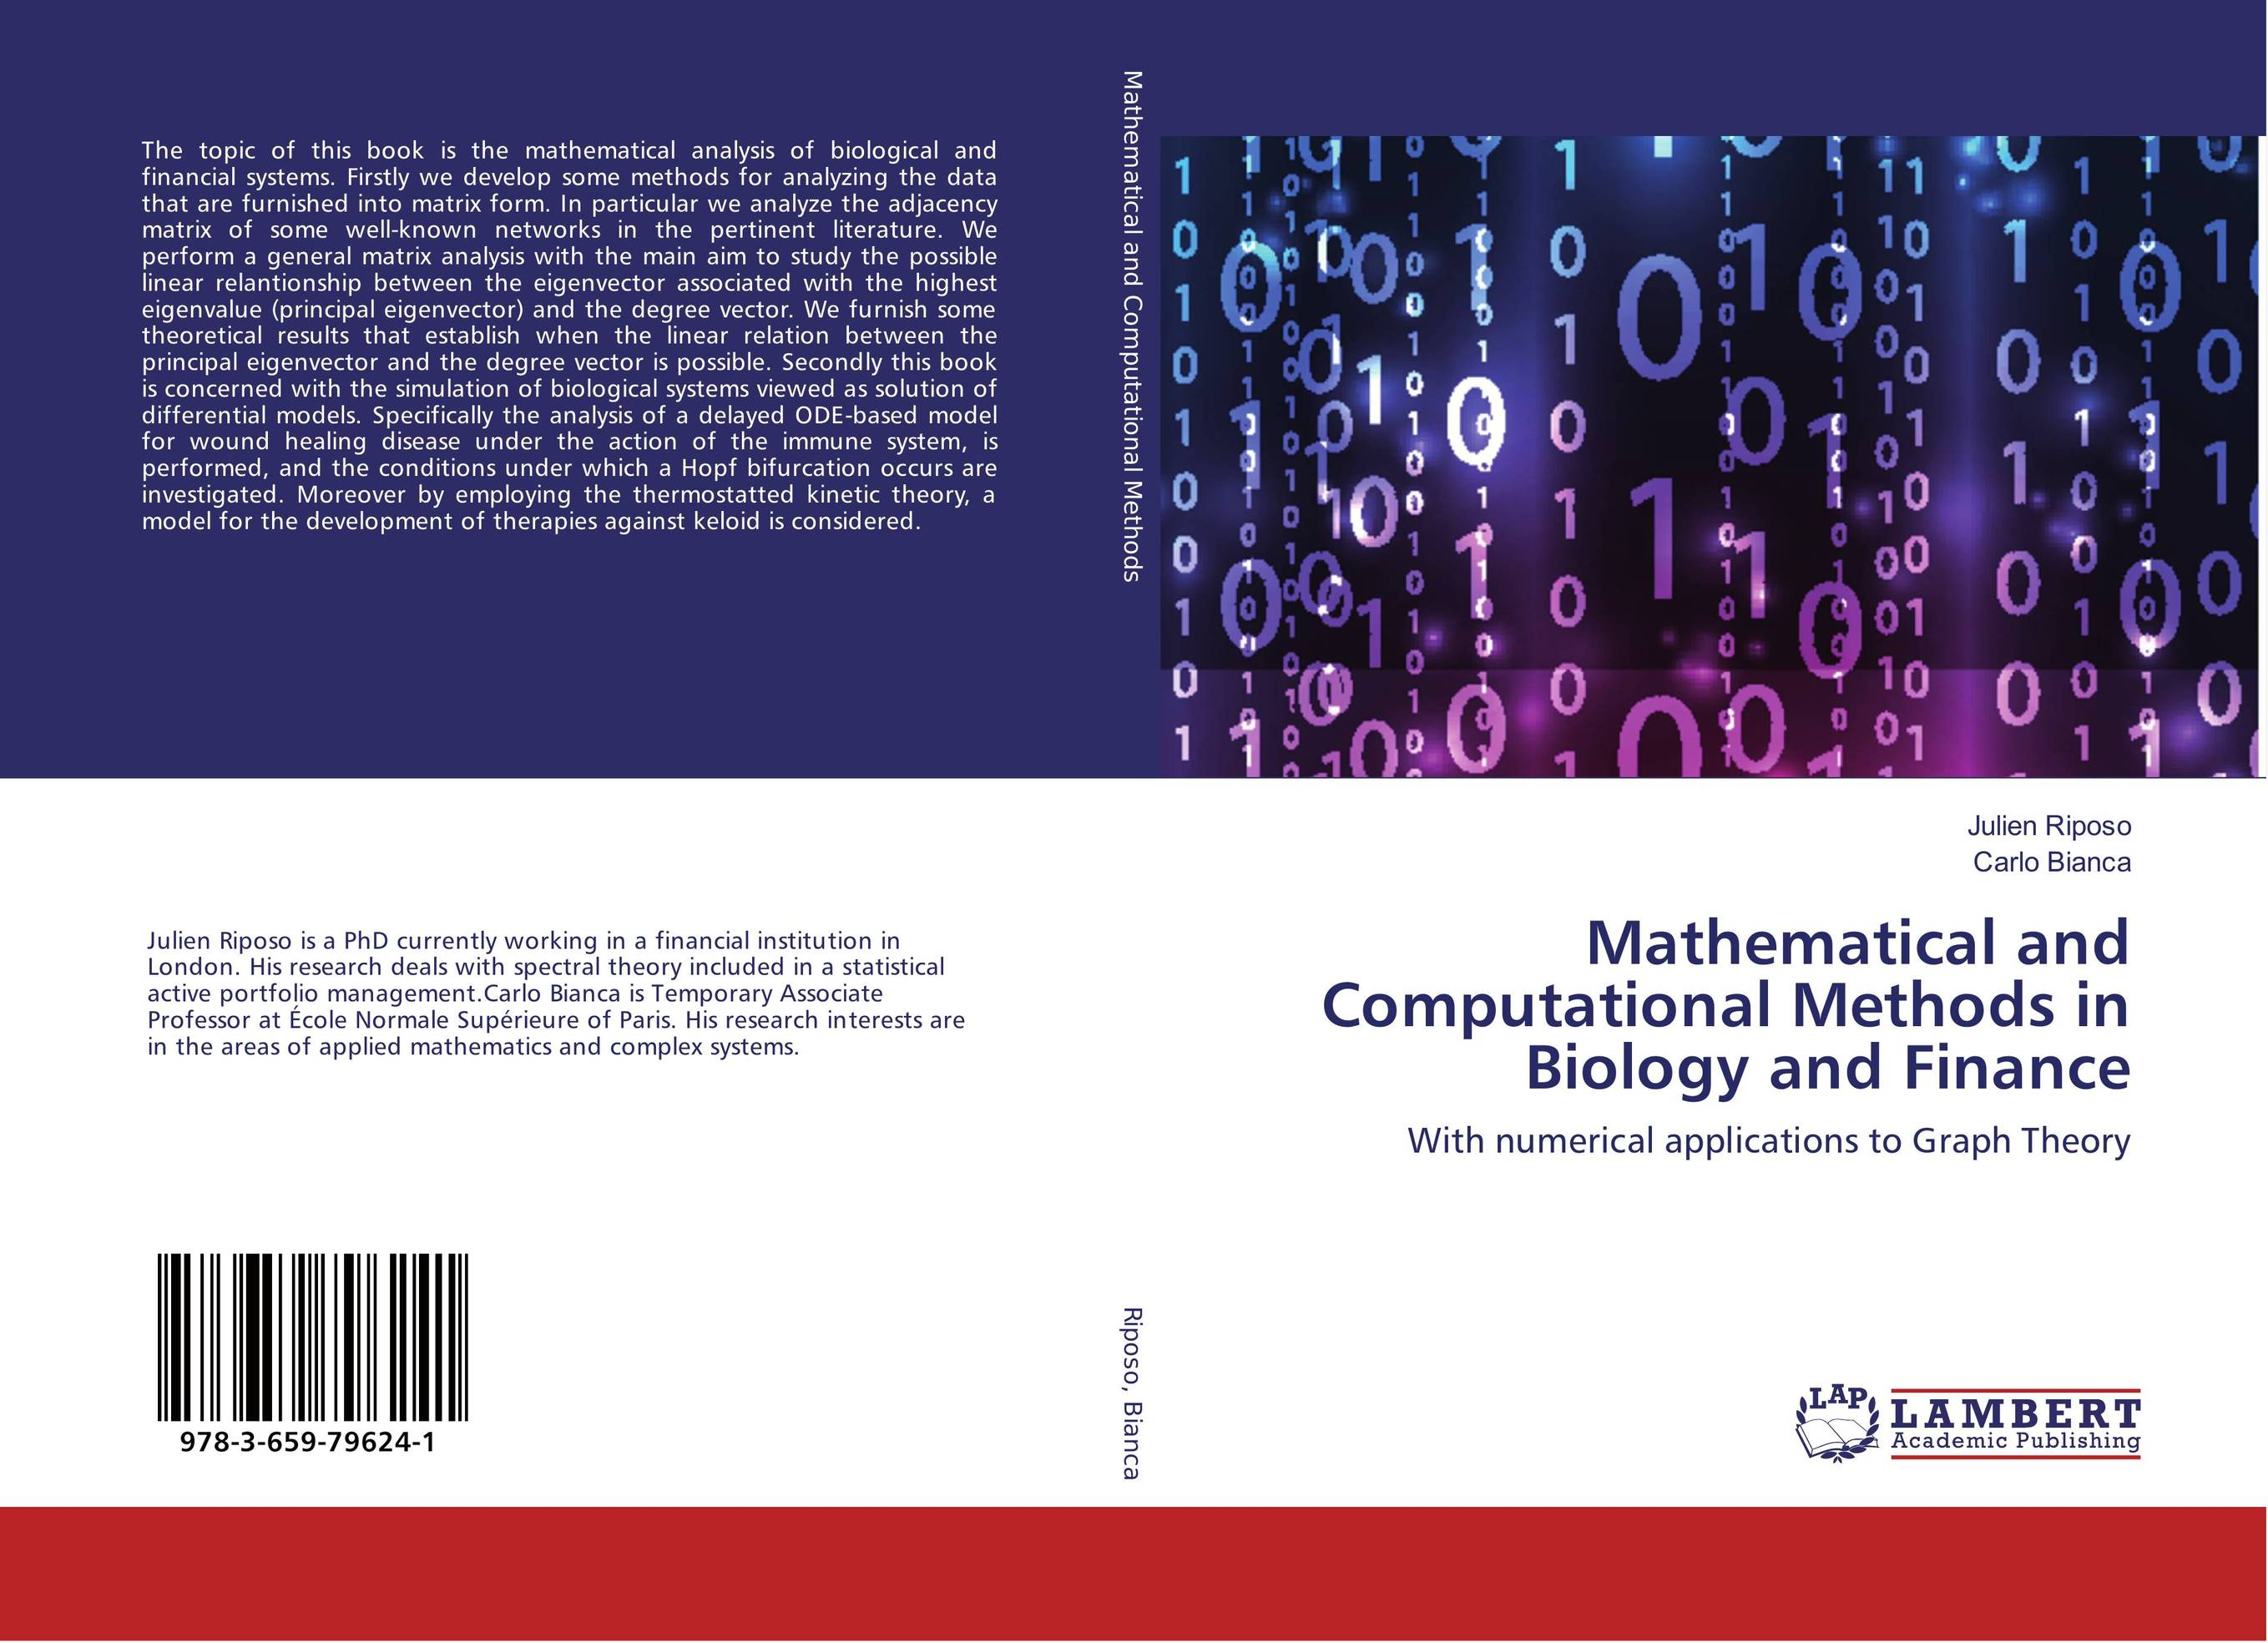 Mathematical and Computational Methods in Biology and Finance development of a computational interface for small hydropower plant